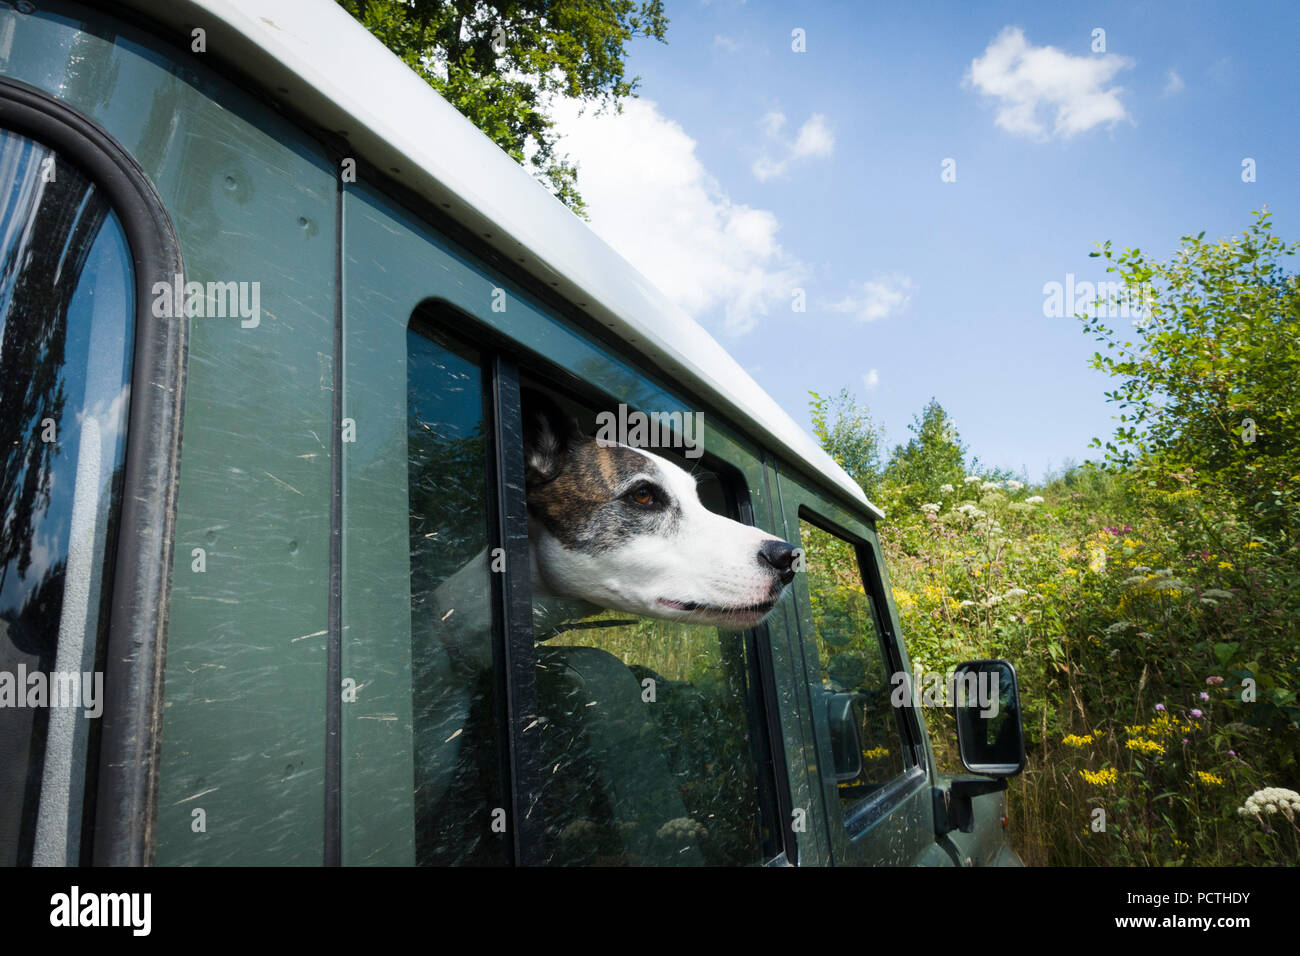 Dog looking out of window of off-road vehicle, close-up - Stock Image